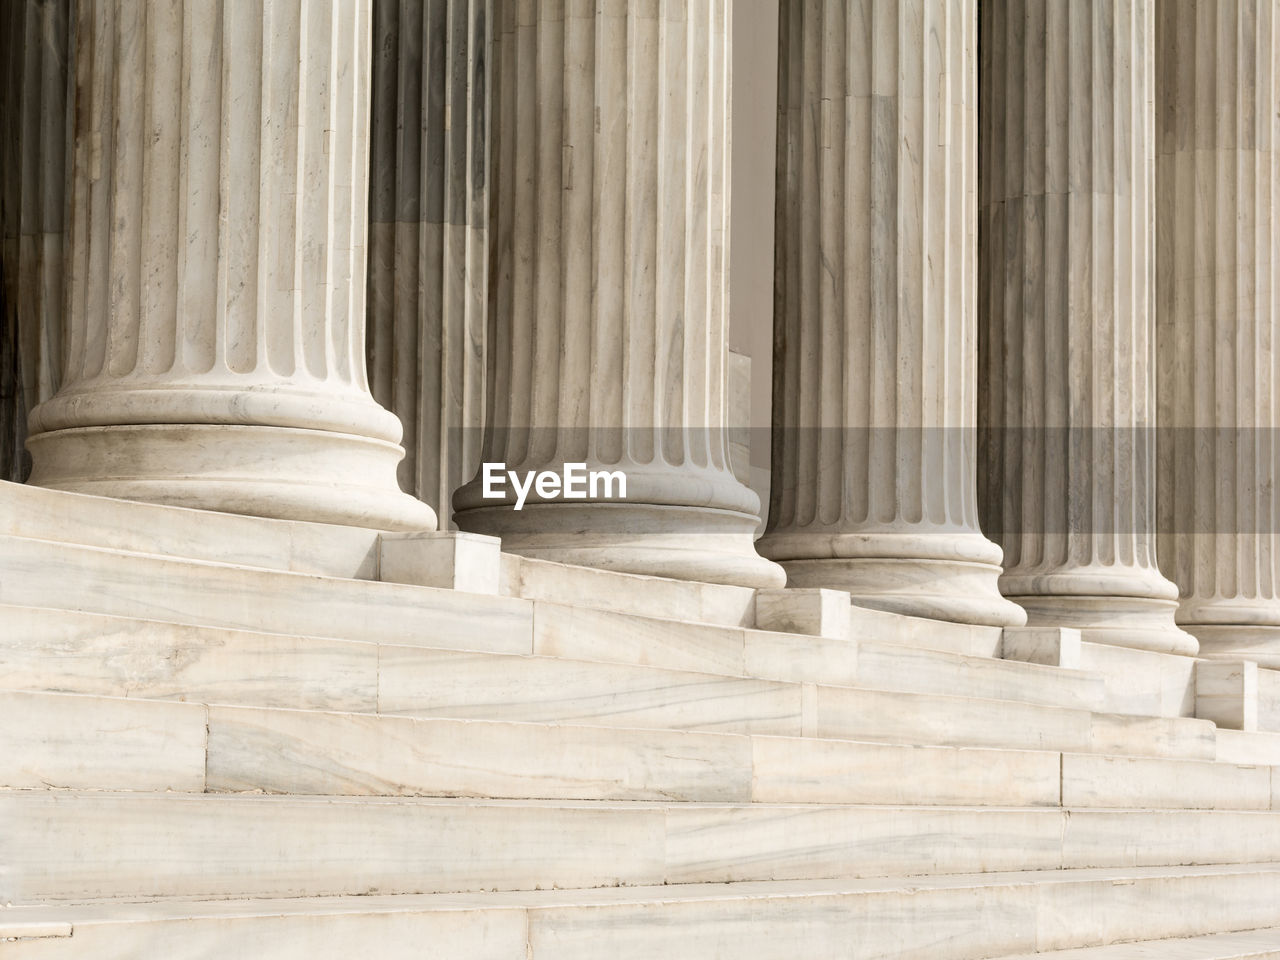 architectural column, law, courthouse, marble, architecture, justice - concept, legal system, government, the past, history, staircase, built structure, authority, no people, building exterior, solid, travel destinations, finance, strength, stability, colonnade, classical style